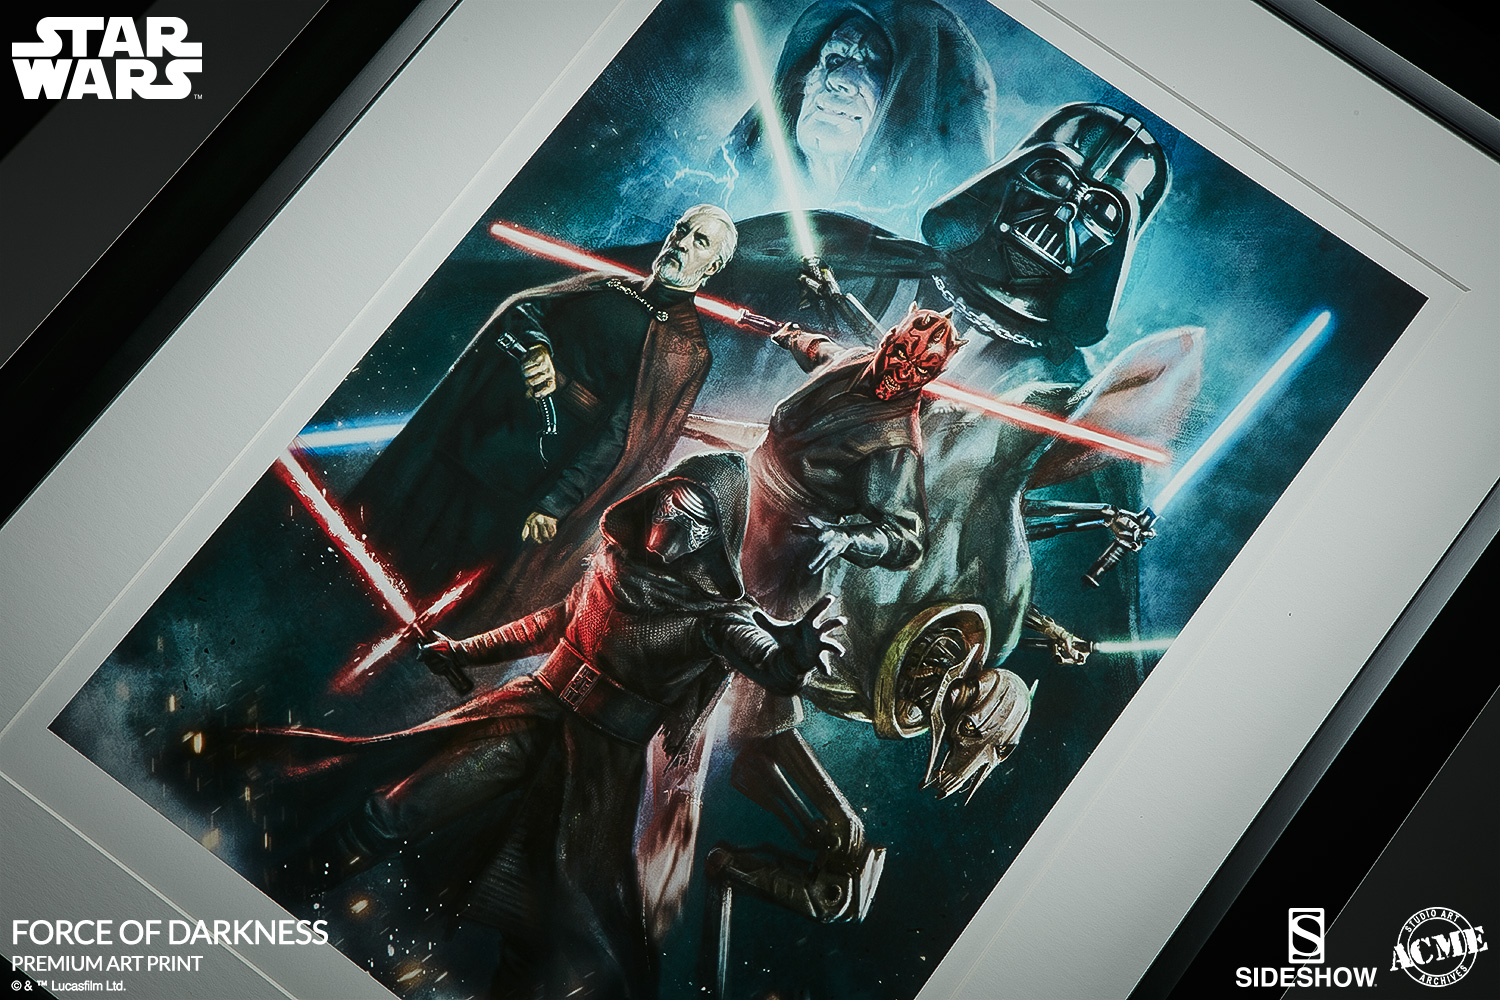 Star Wars Force of Darkness Art Print by ACME Archives